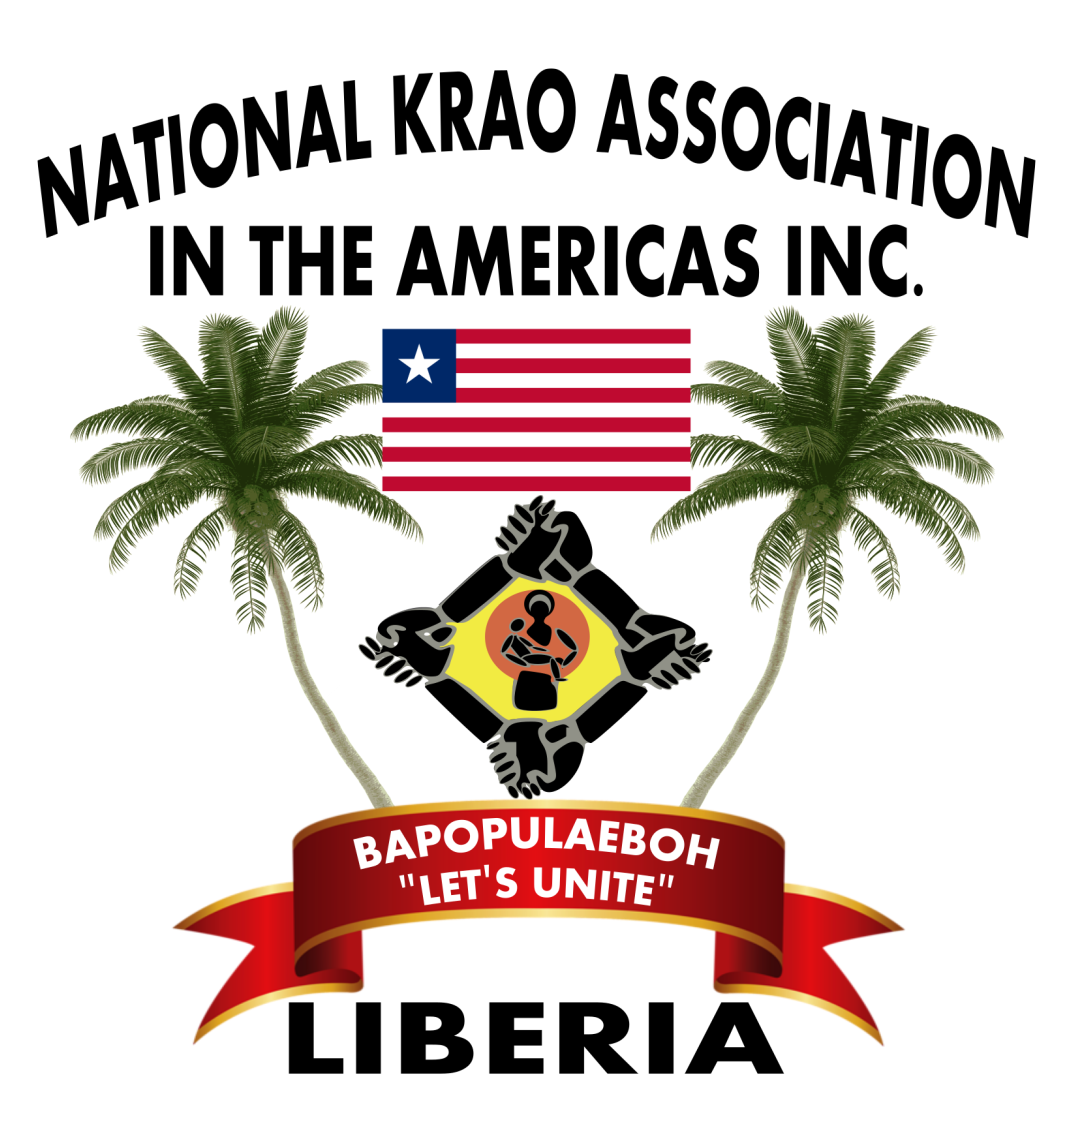 Nationa Krao Association